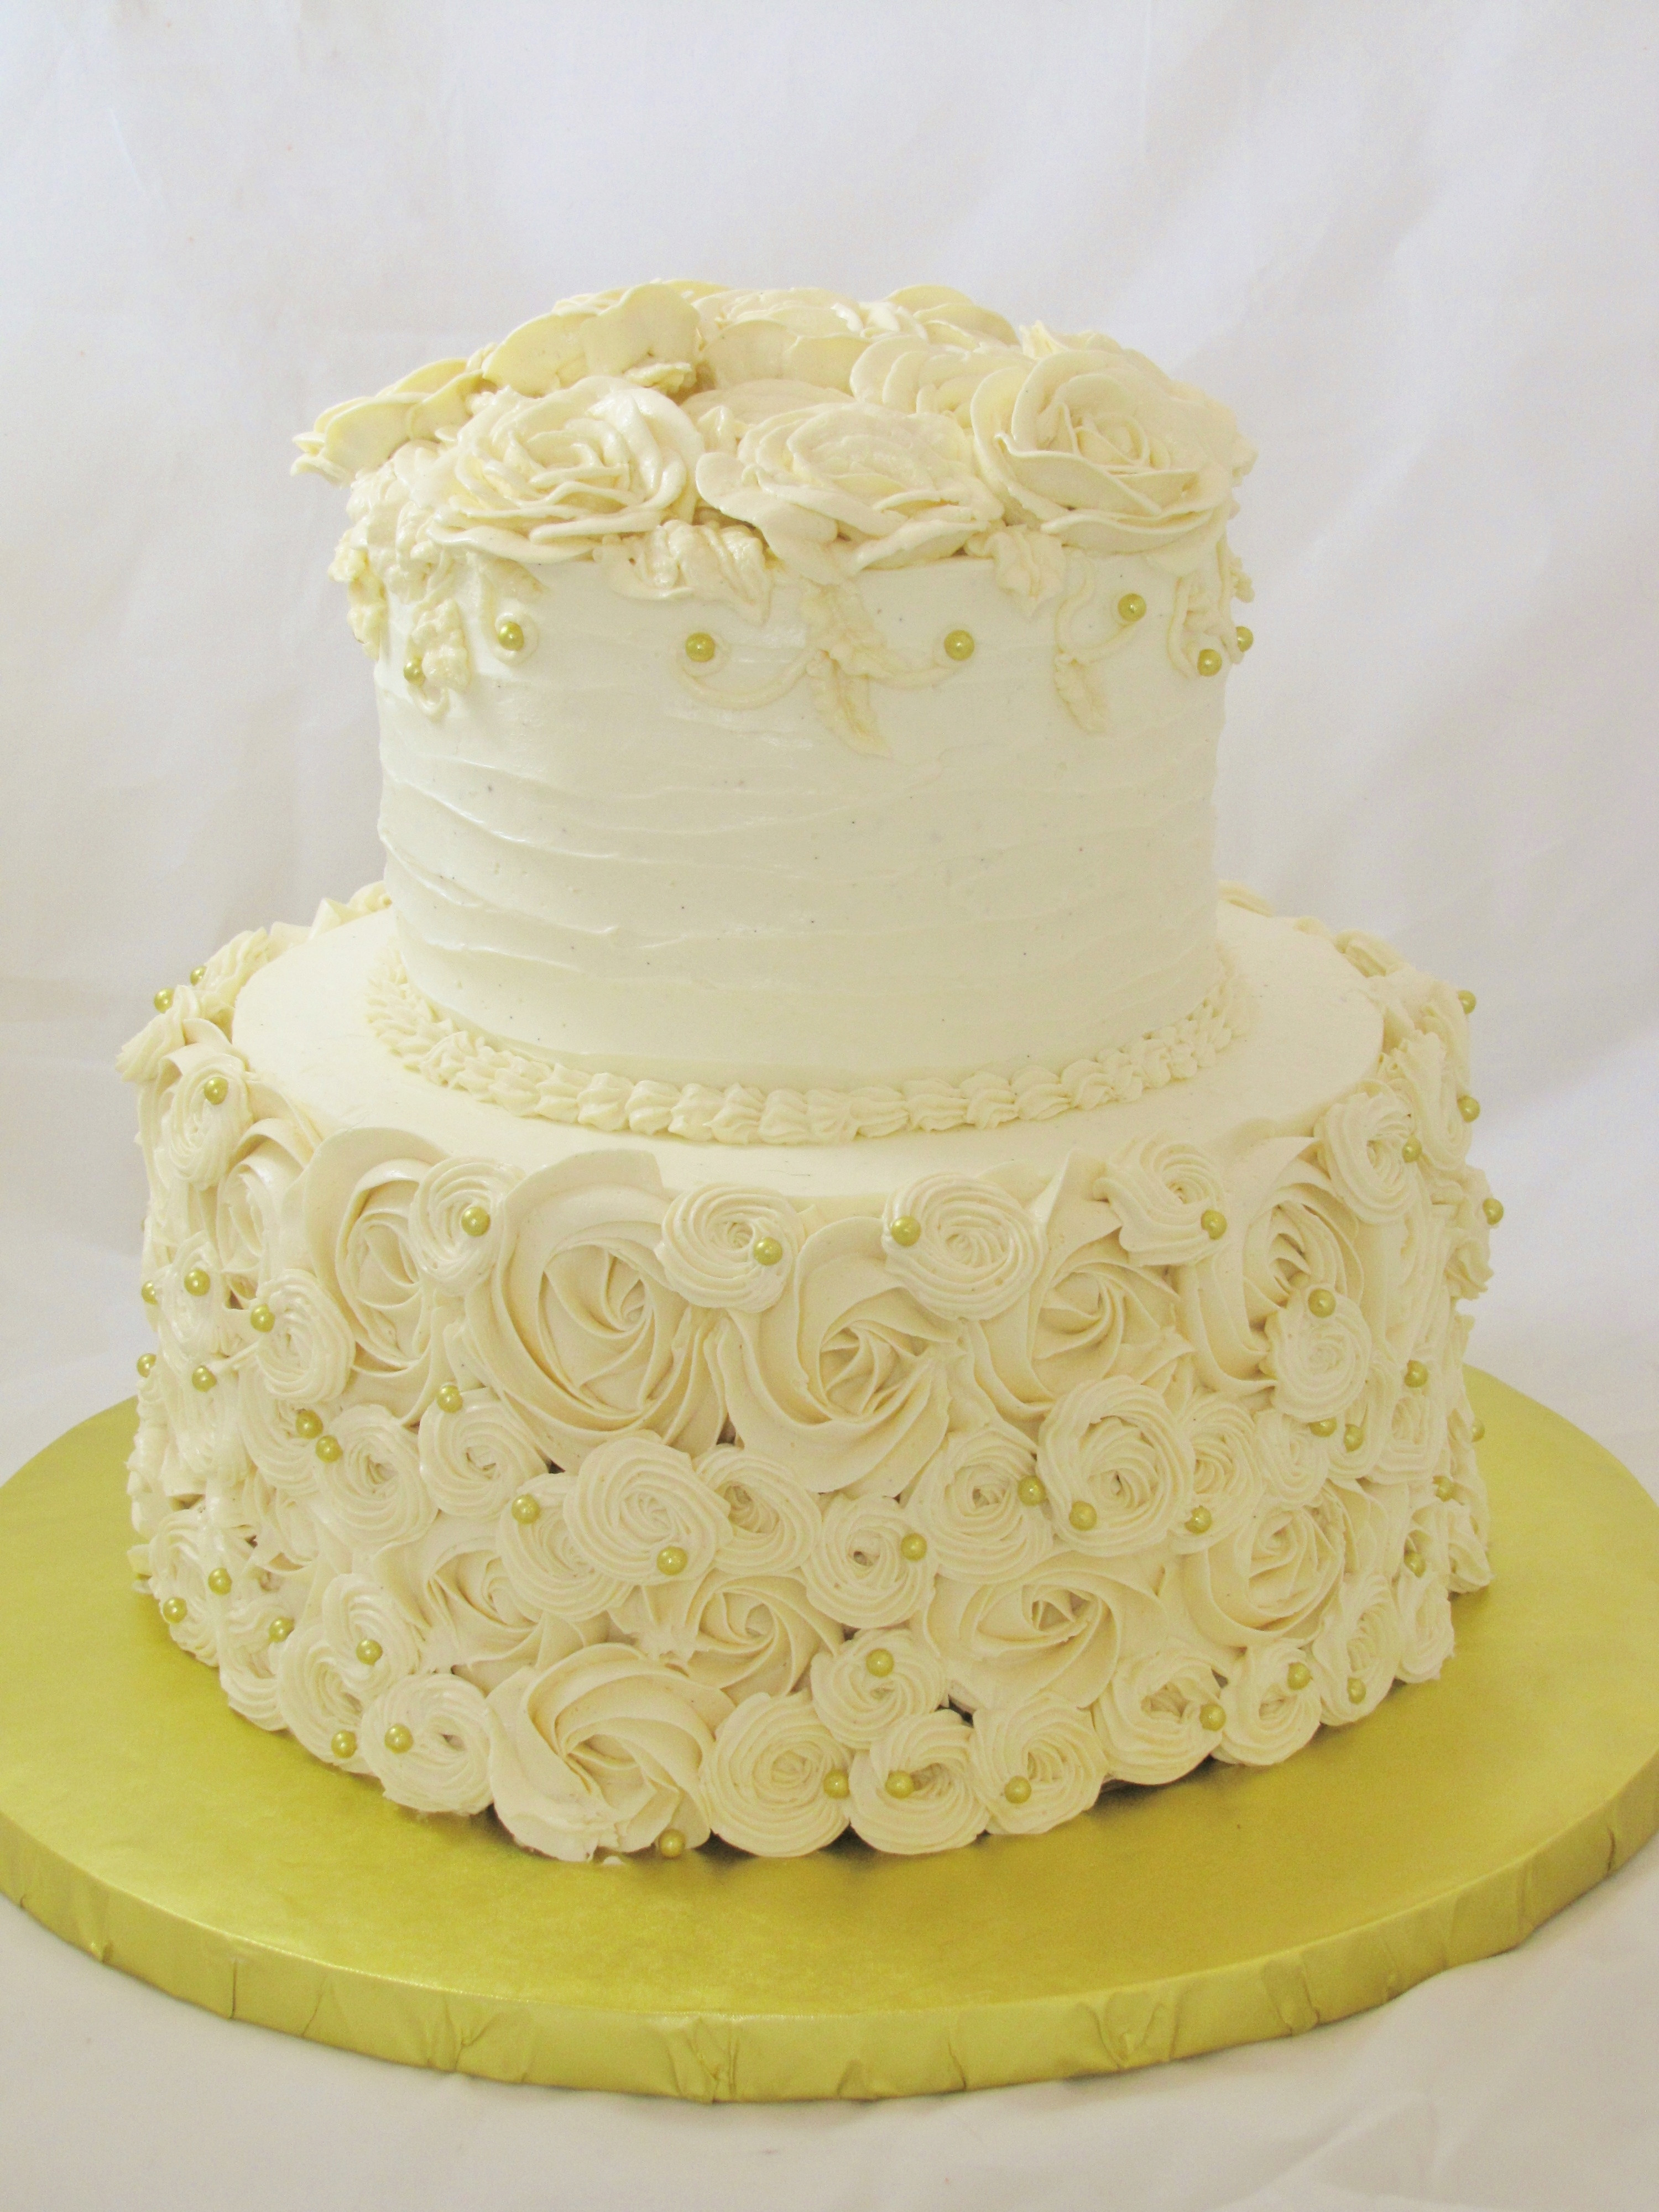 Two Tiered Wedding Cakes  Round Piped Buttercream Wedding Cake CakeCentral